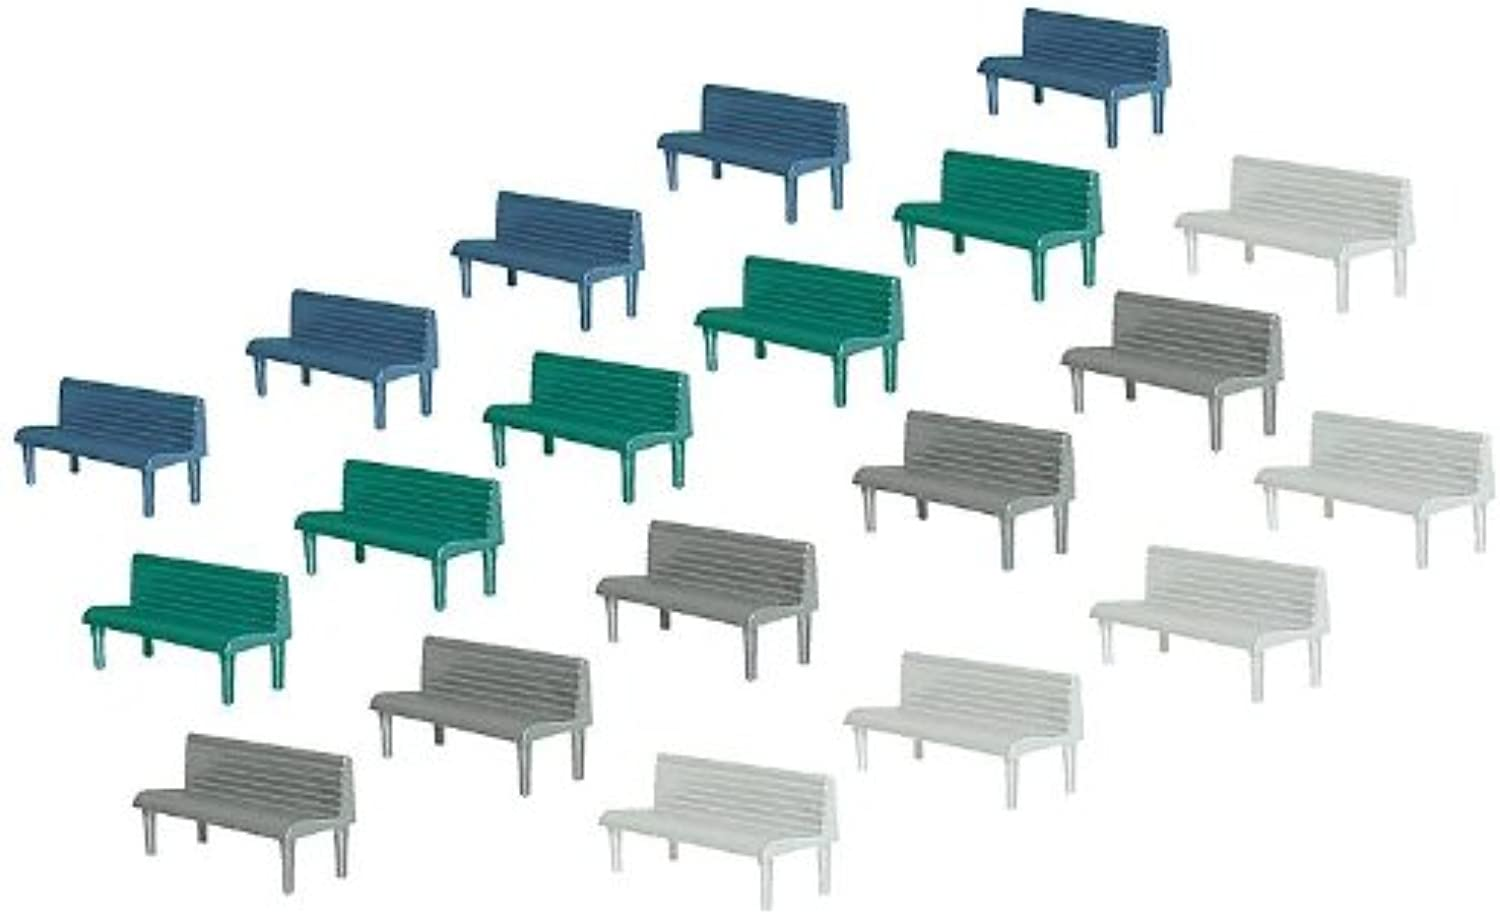 Faller 180441 Benches 20 Scenery and Accessories